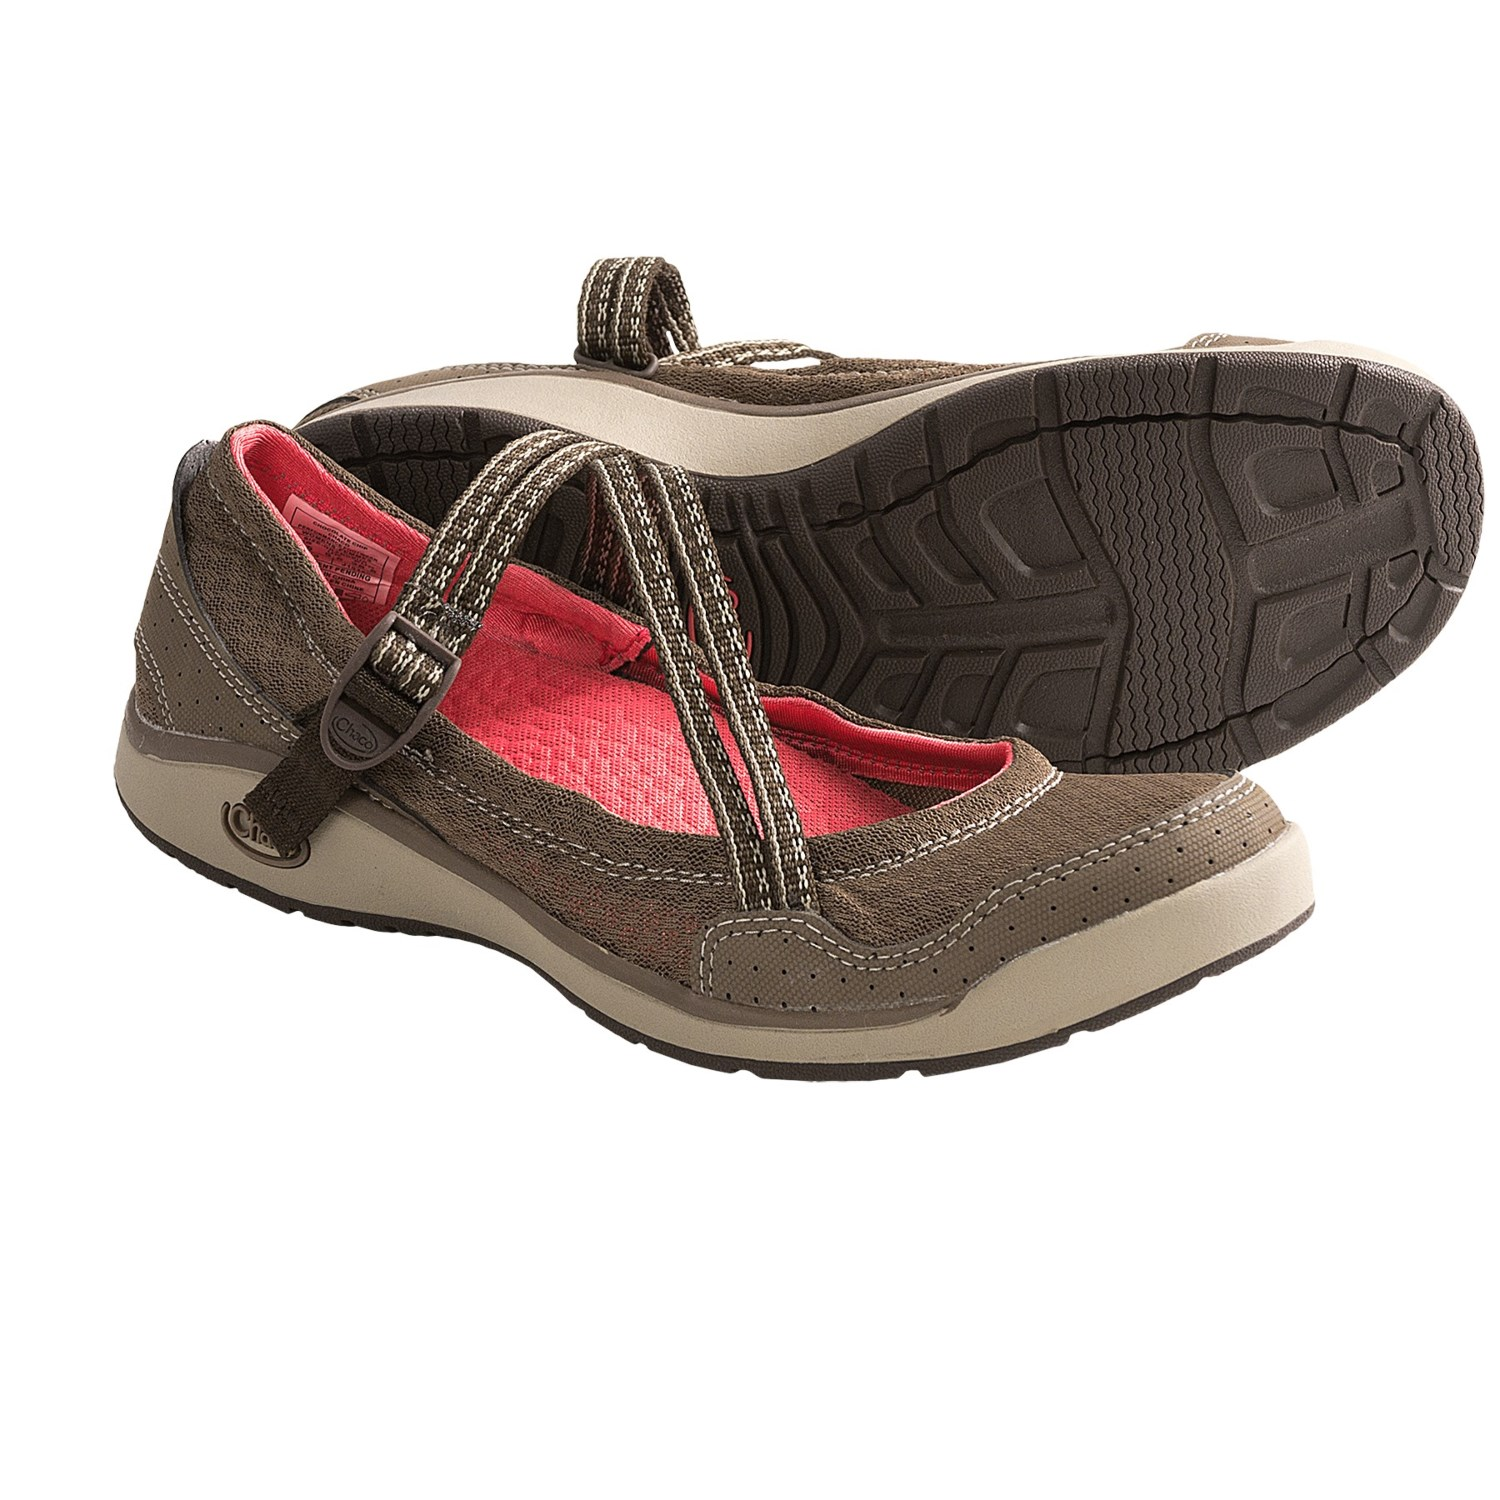 Chaco Keel Mary Jane Shoes (For Women) in Chocolate Chip